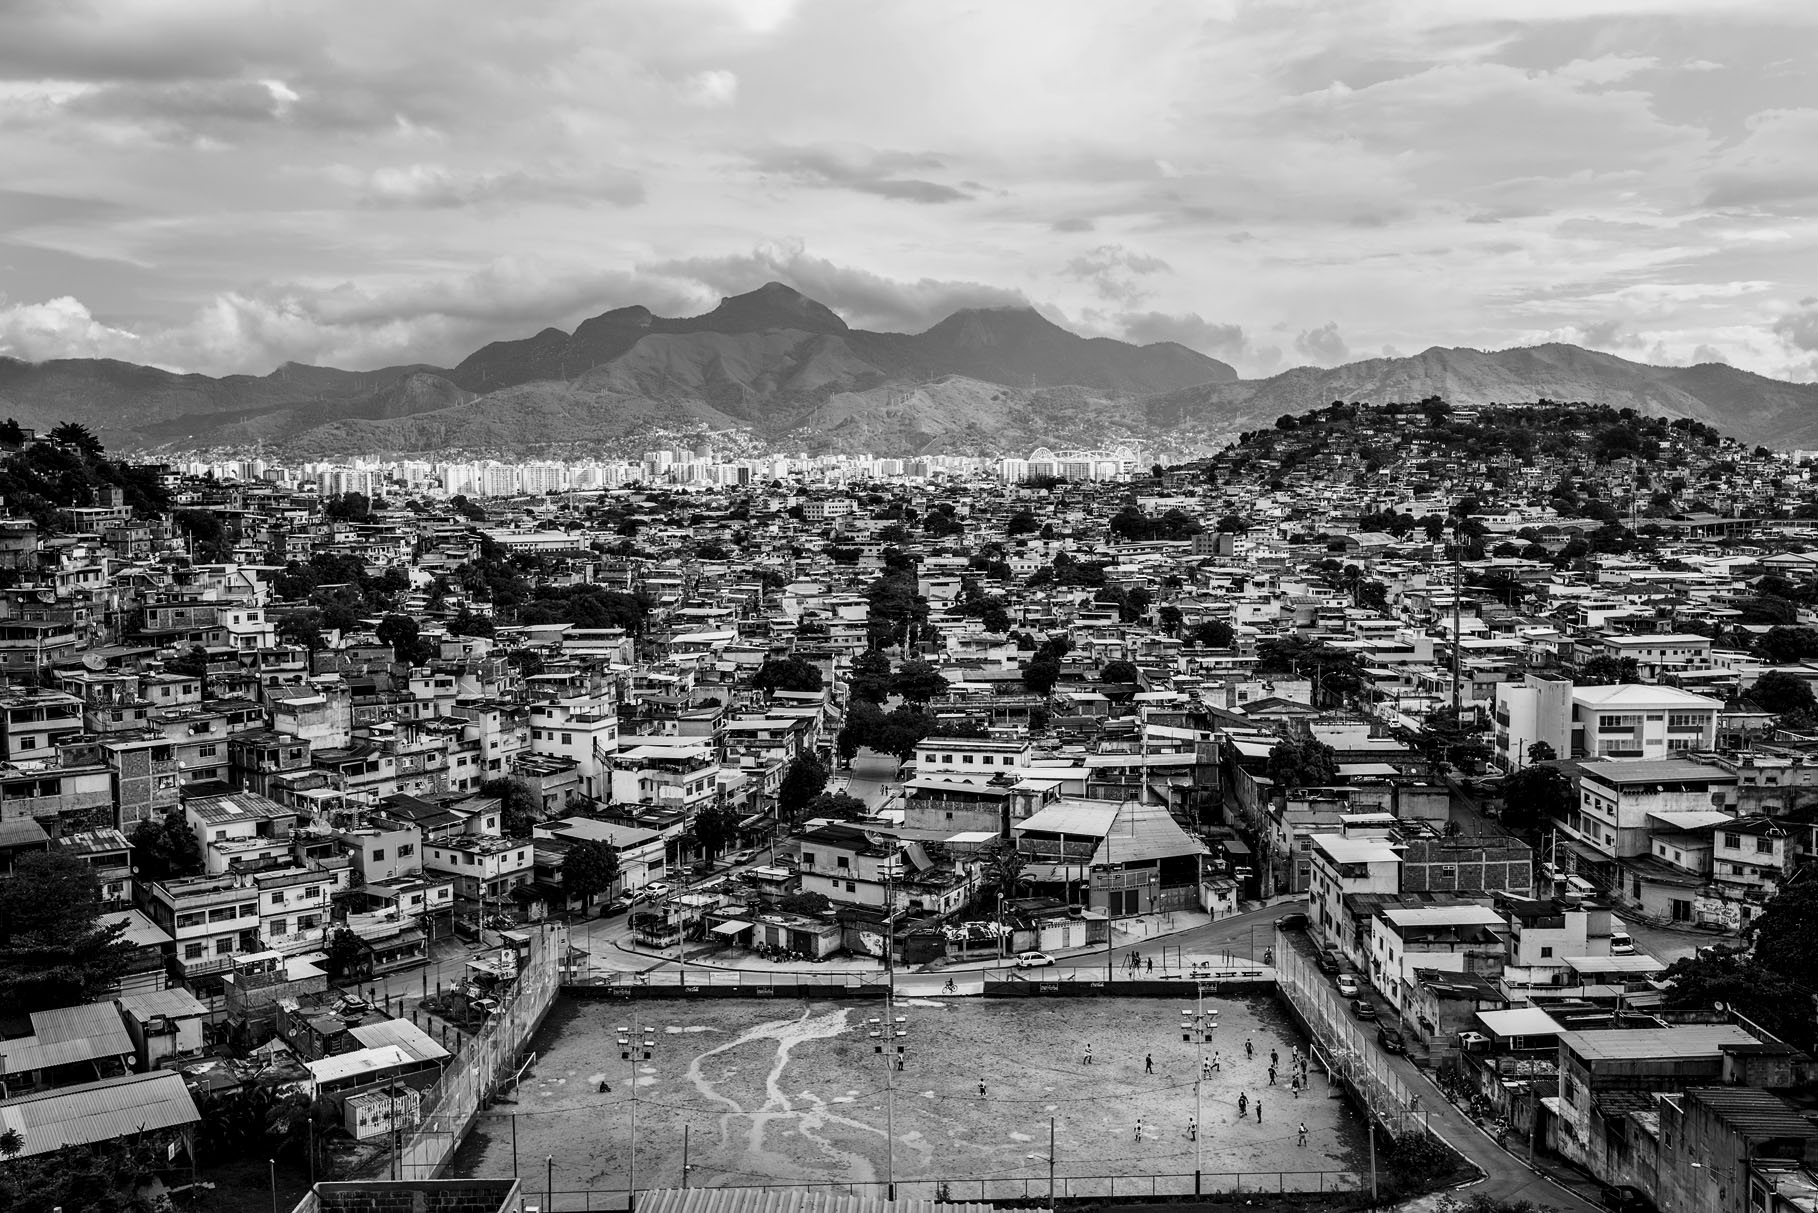 The New York Times Magazine: 'The Media Doesn't Care What Happens Here'The Complexo do Alemão favelas in Rio de Janeiro.